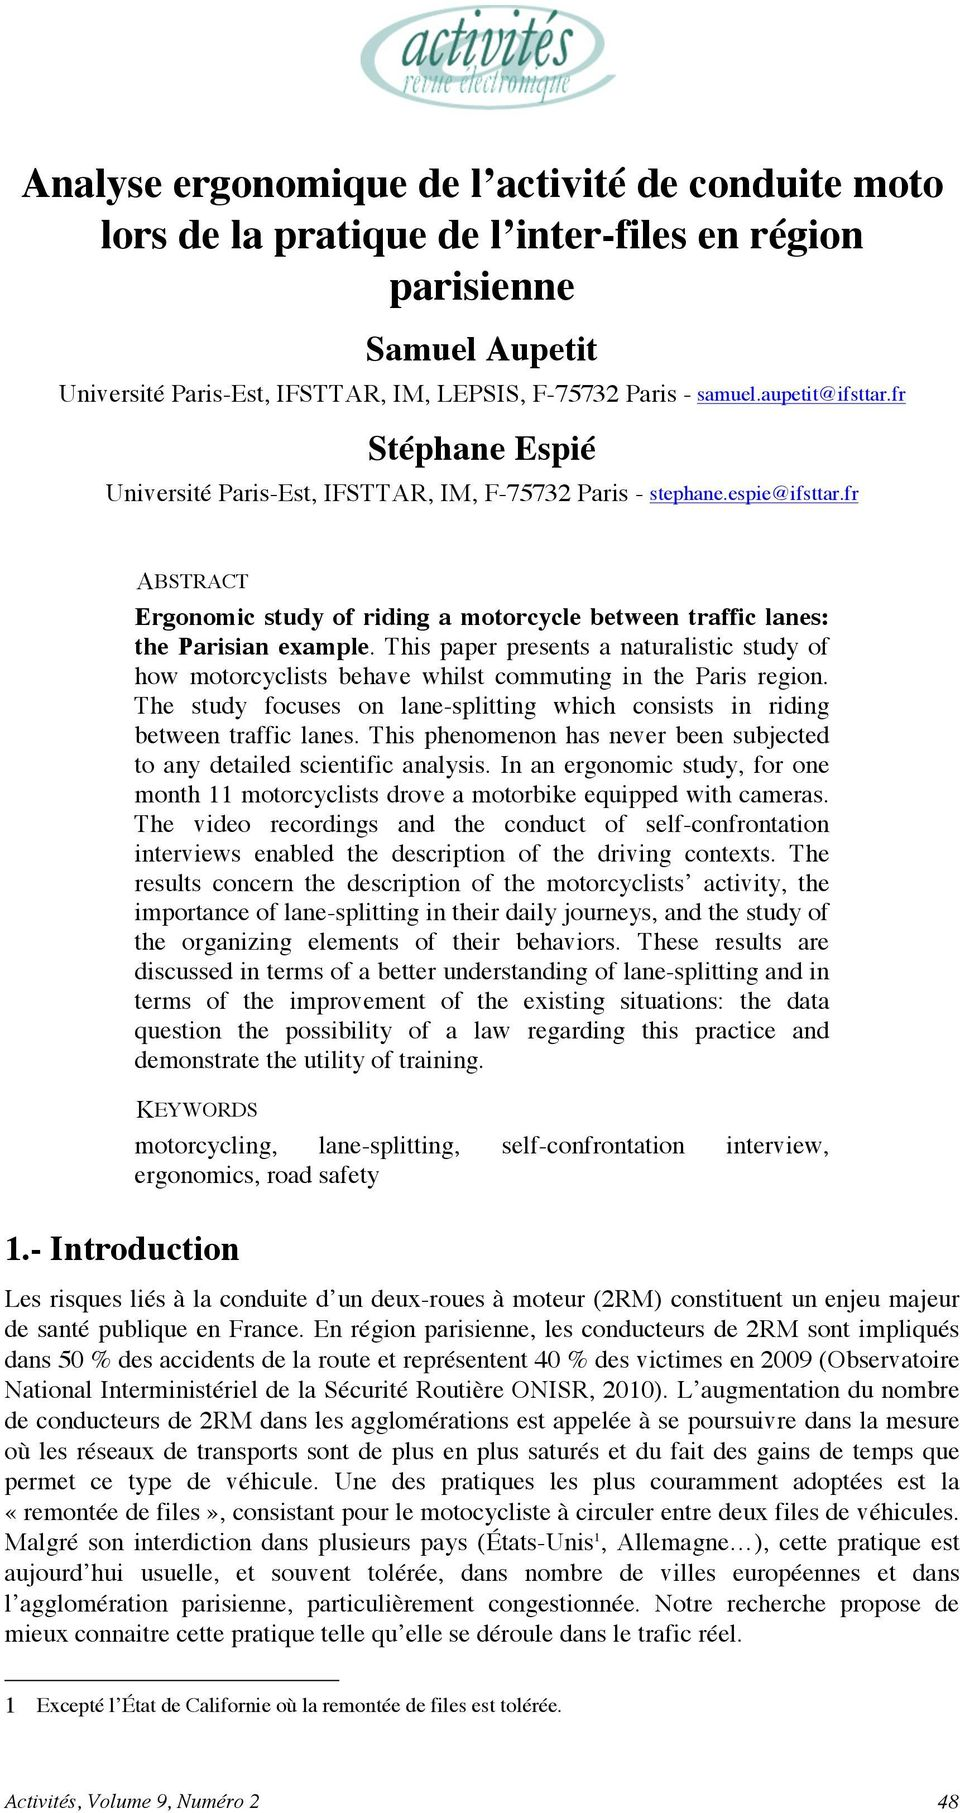 This paper presents a naturalistic study of how motorcyclists behave whilst commuting in the Paris region. The study focuses on lane-splitting which consists in riding between traffic lanes.